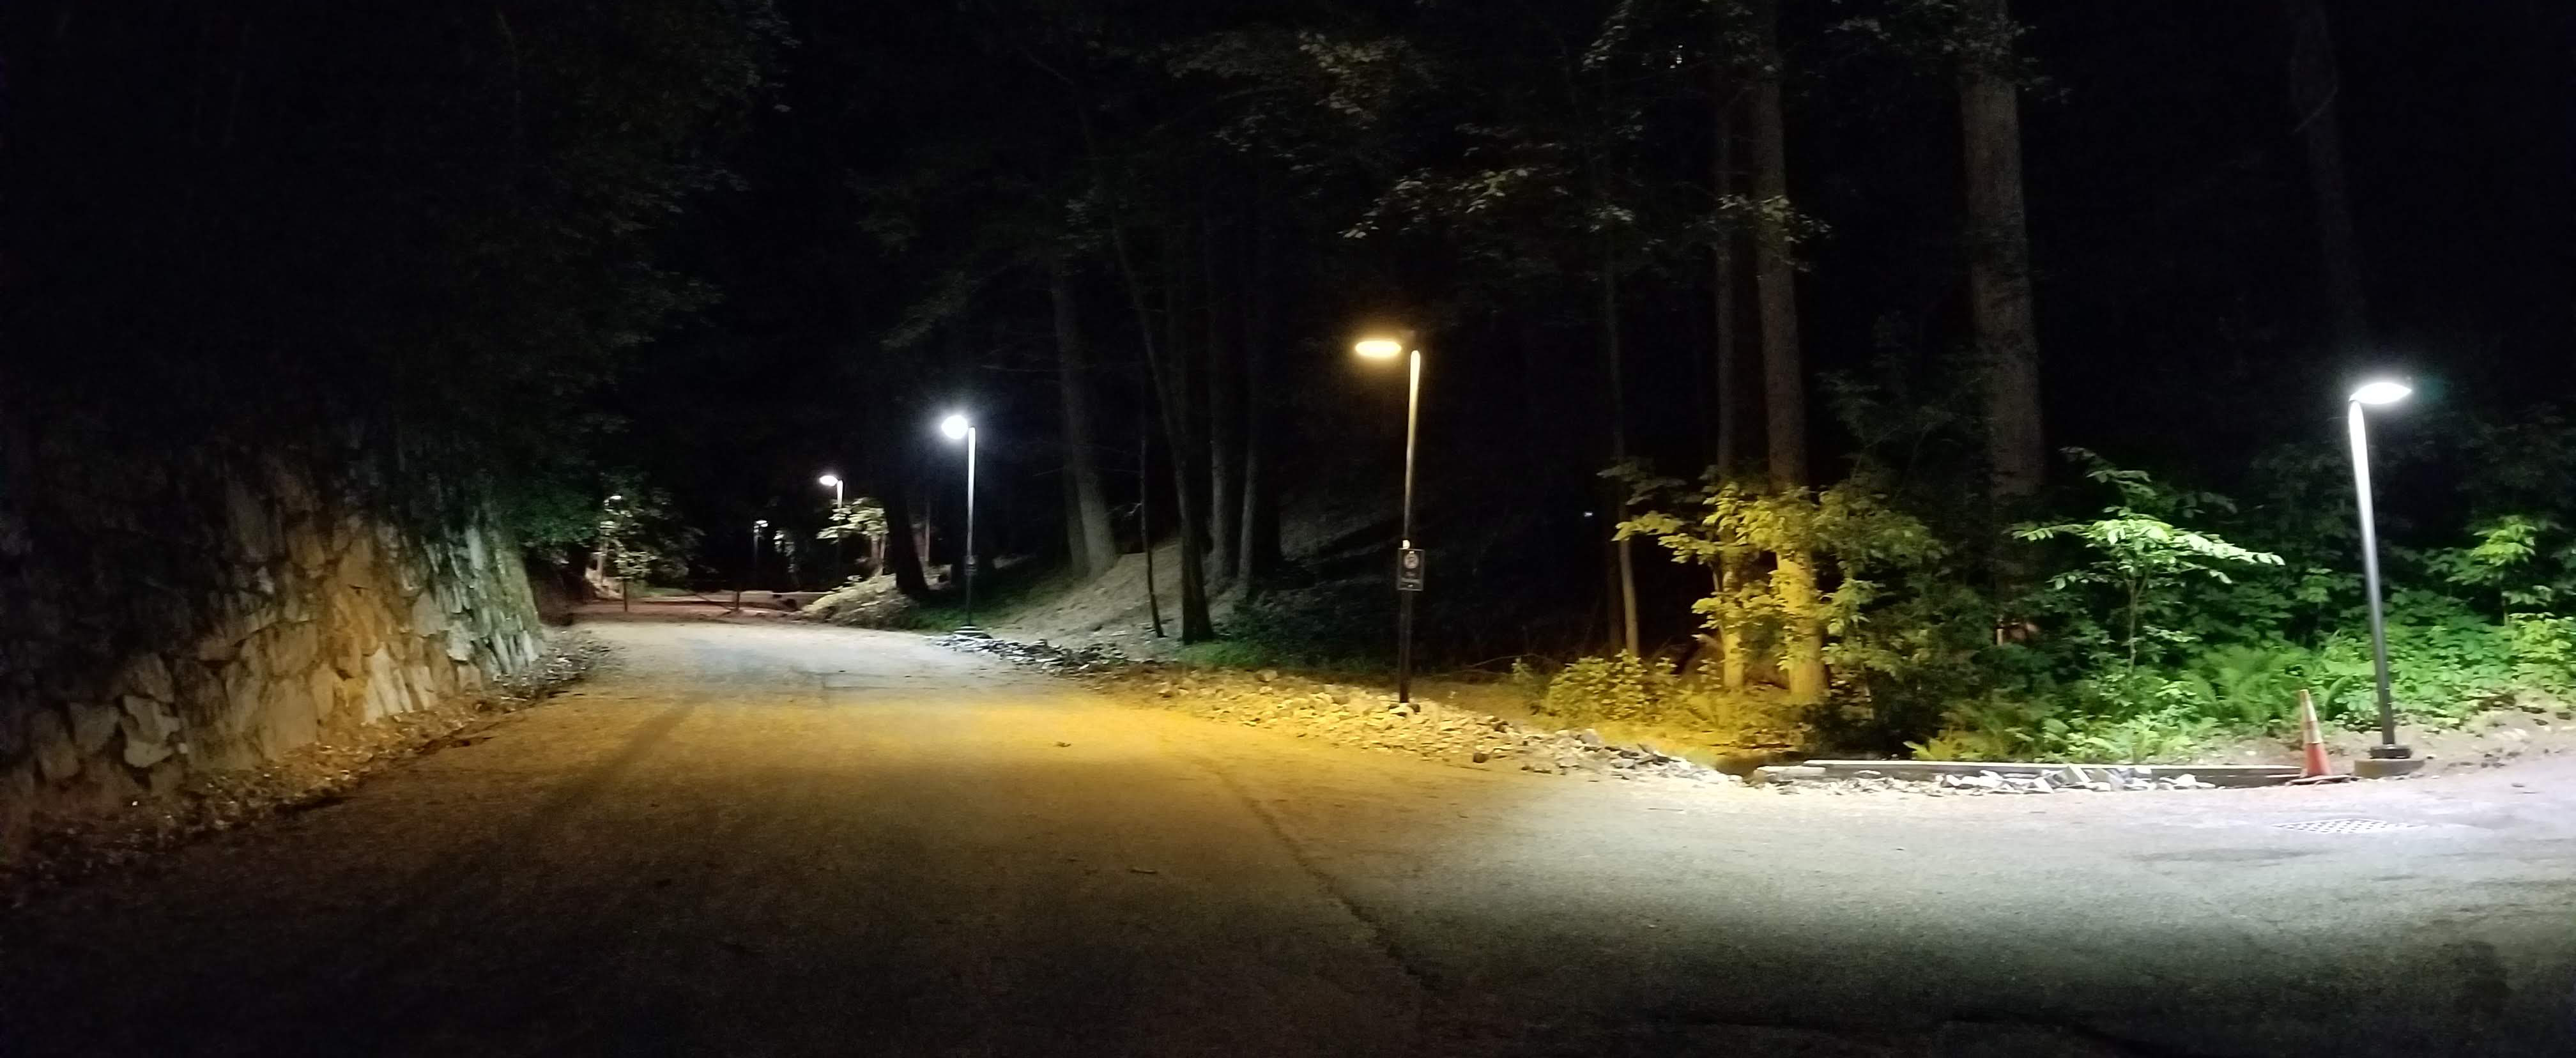 Existing pathway lighting